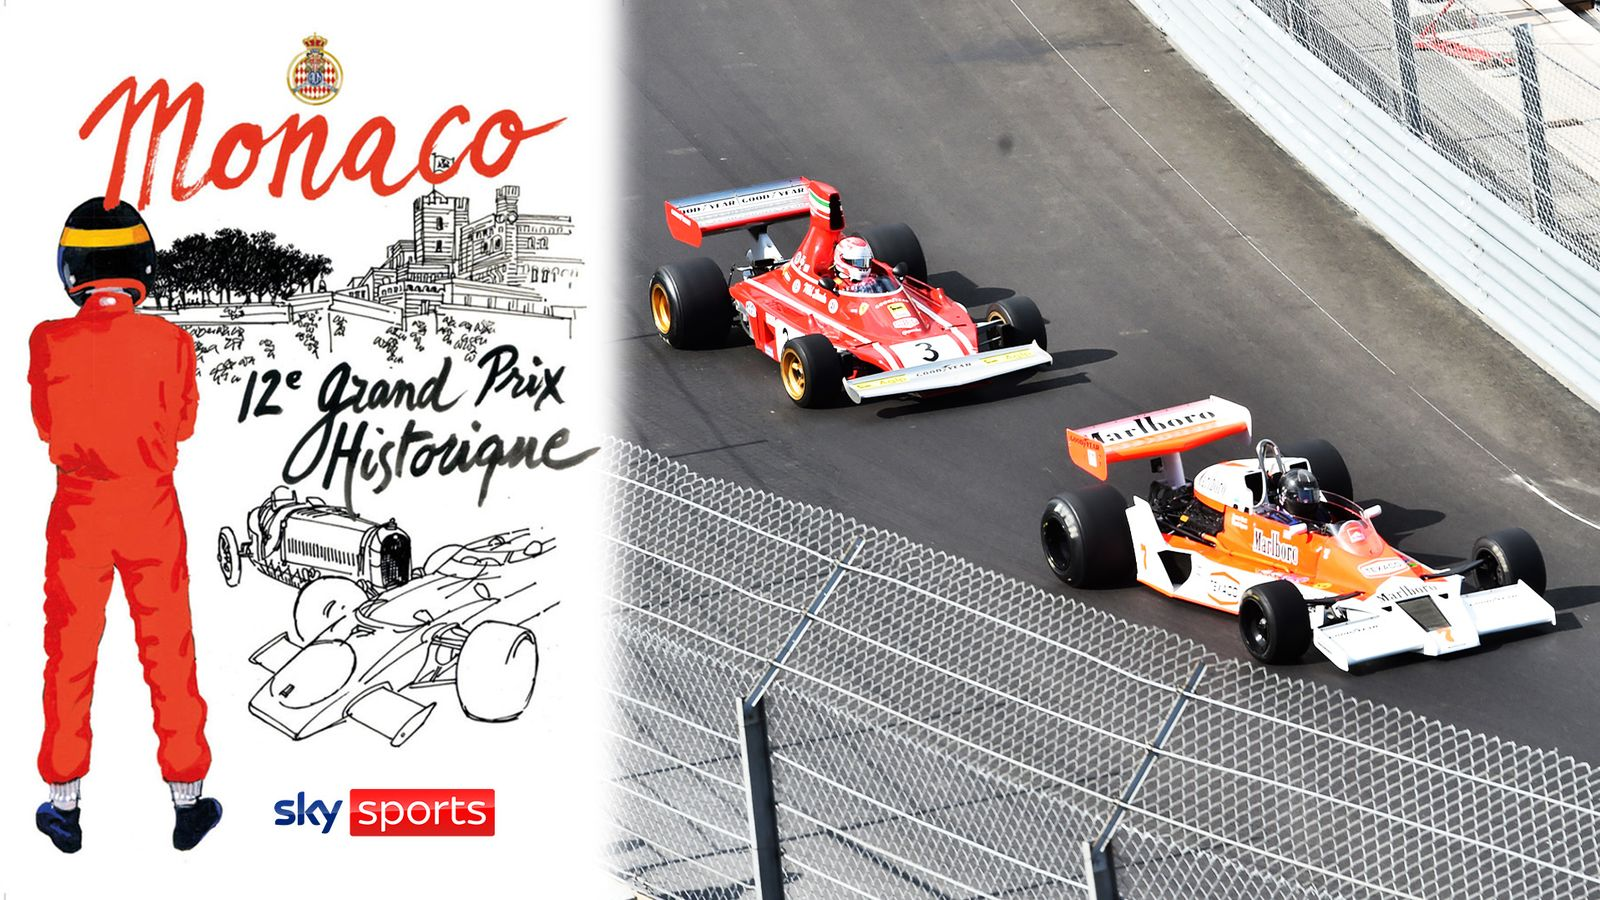 Monaco Historique: Watch classic Formula 1 cars race again on Sky Sports F1 YouTube this weekend